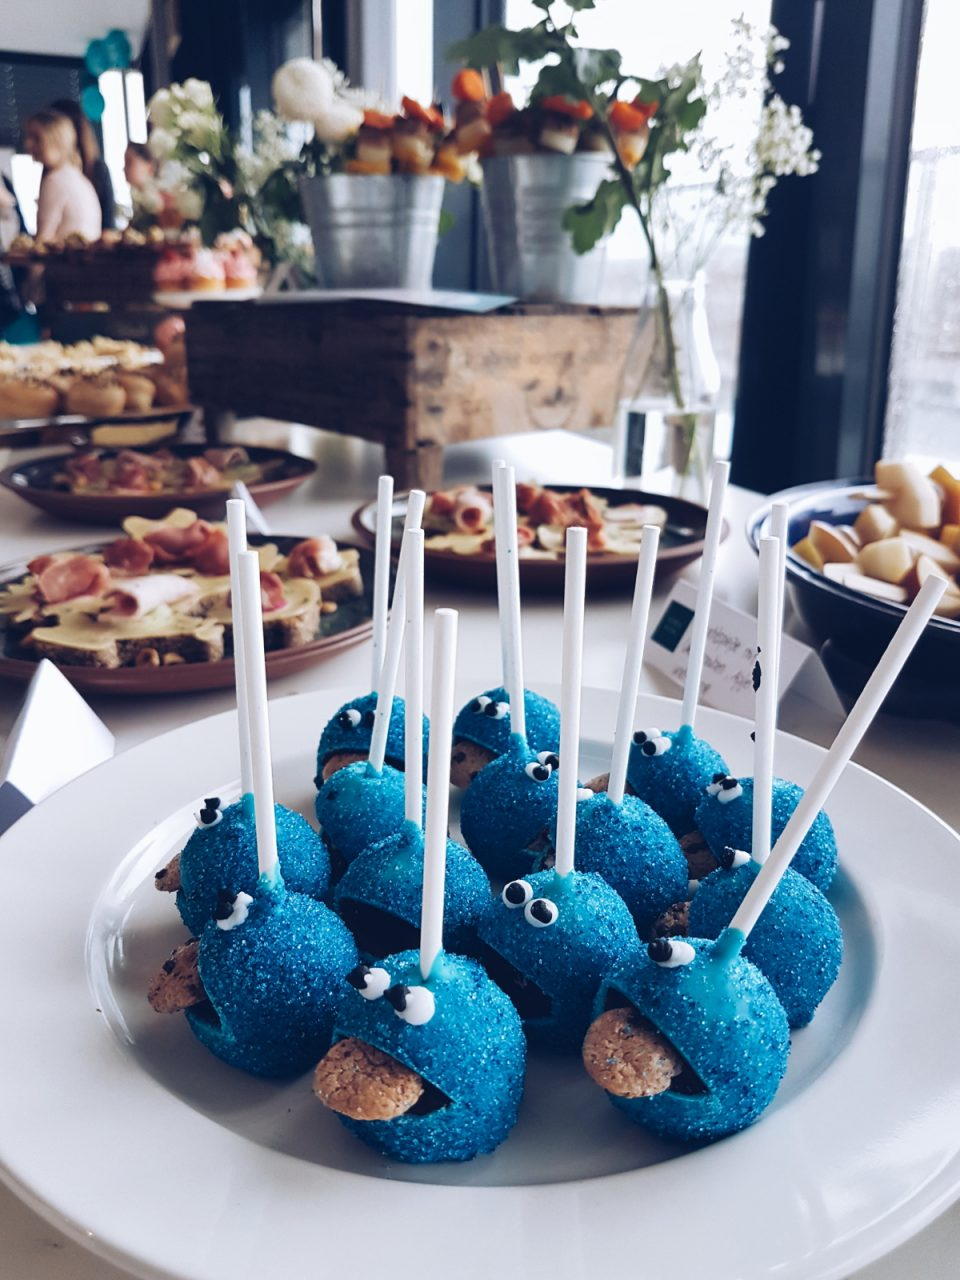 monster-cake-pops-buffet-mamablog-momblogger-blogger-hamburg